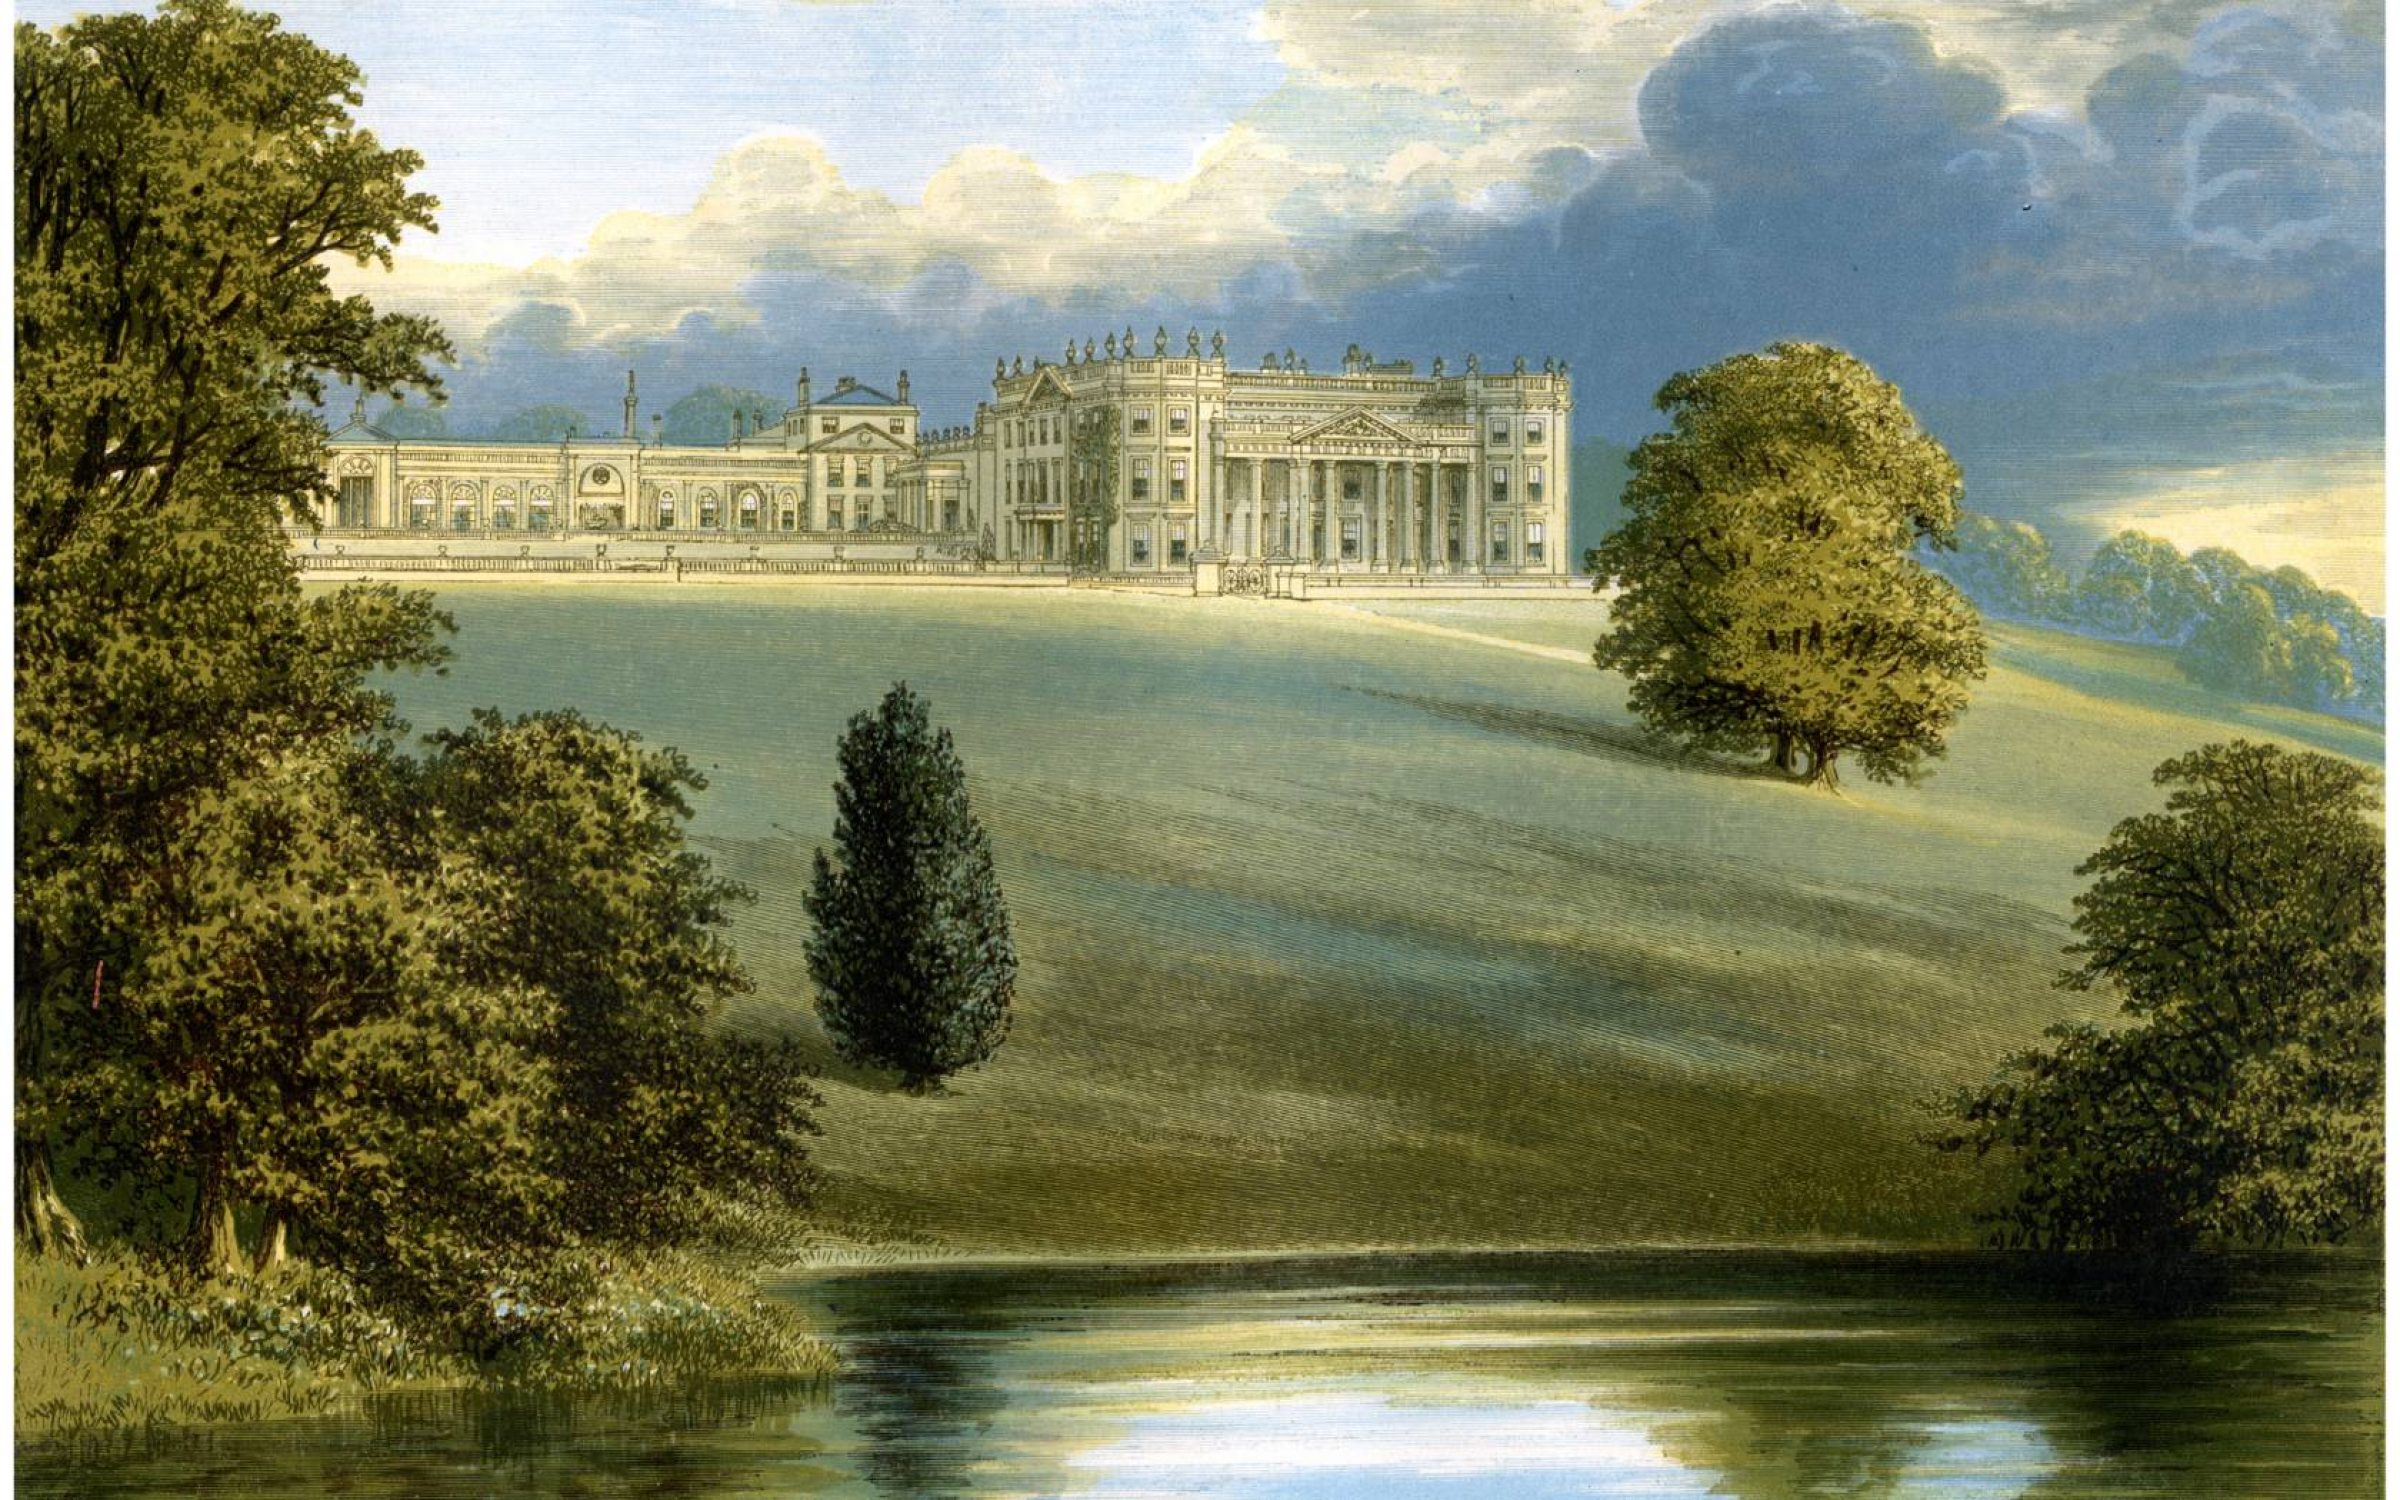 Bowood Park, Wiltshire, home of the Marquess of Lansdowne, c1880. Wood-engraved plates after paintings by Benjamin Fawcett and Alexander Francis Lydon. Credit: The Print Collector/Print Collector/Getty Images